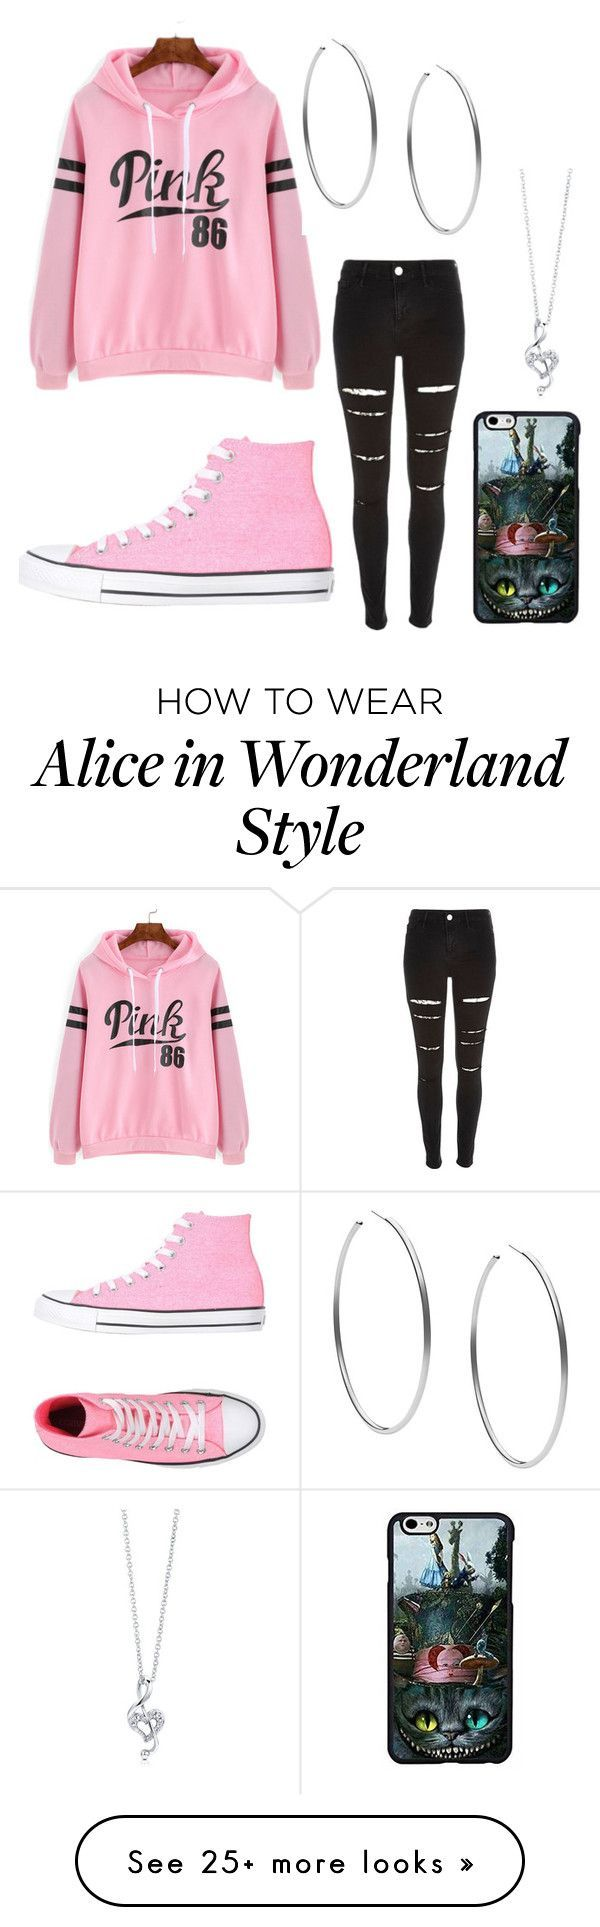 """""""My first set using the app"""" by unique-awesome-xoxo on Polyvore featuring River Island, Converse, BERRICLE, Michael Kors, women's clothing, women, female, woman, misses and juniors"""